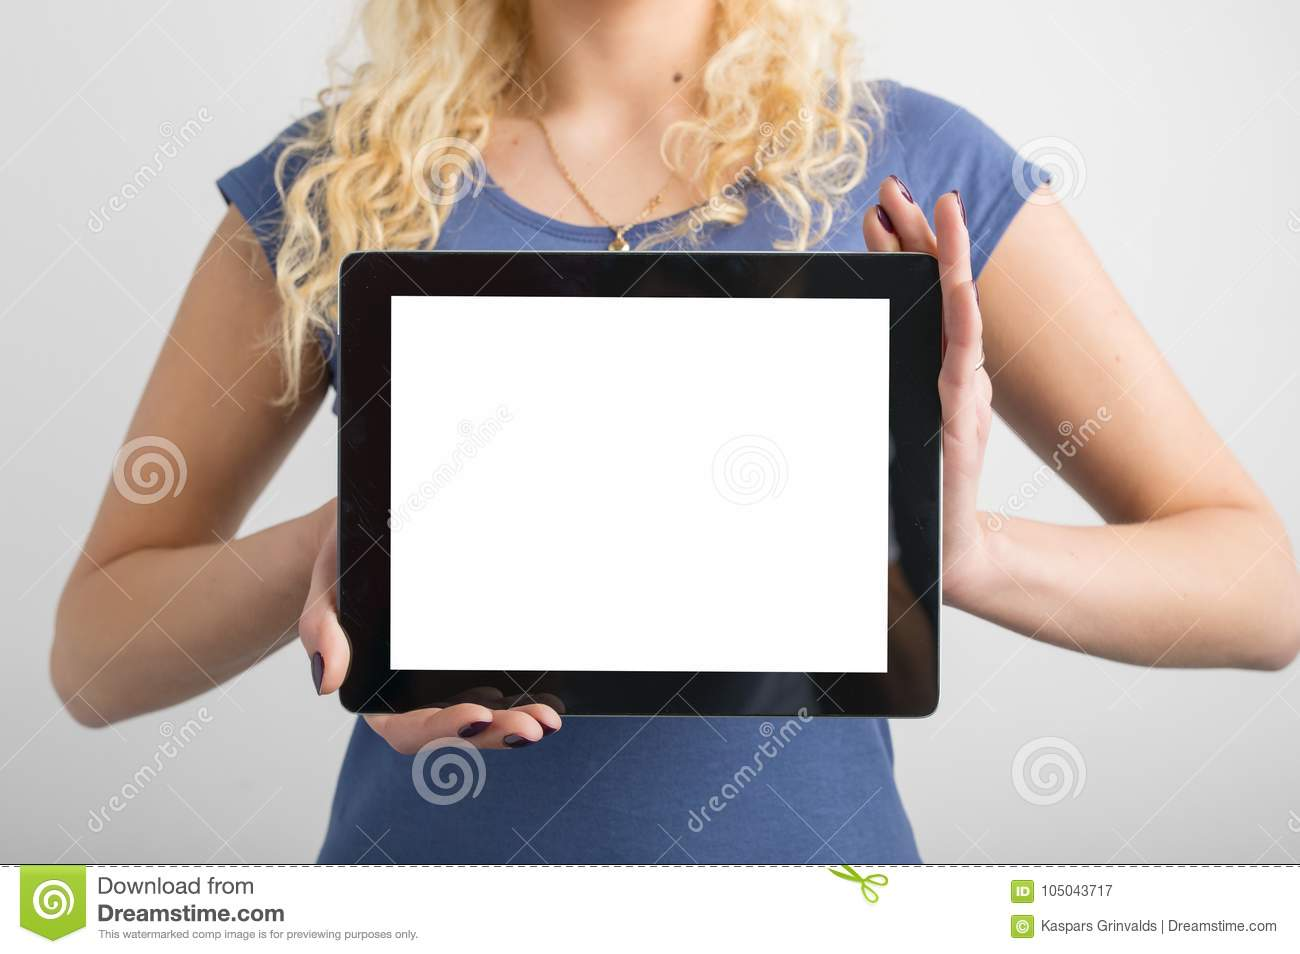 Person holding blank screen tablet in hands